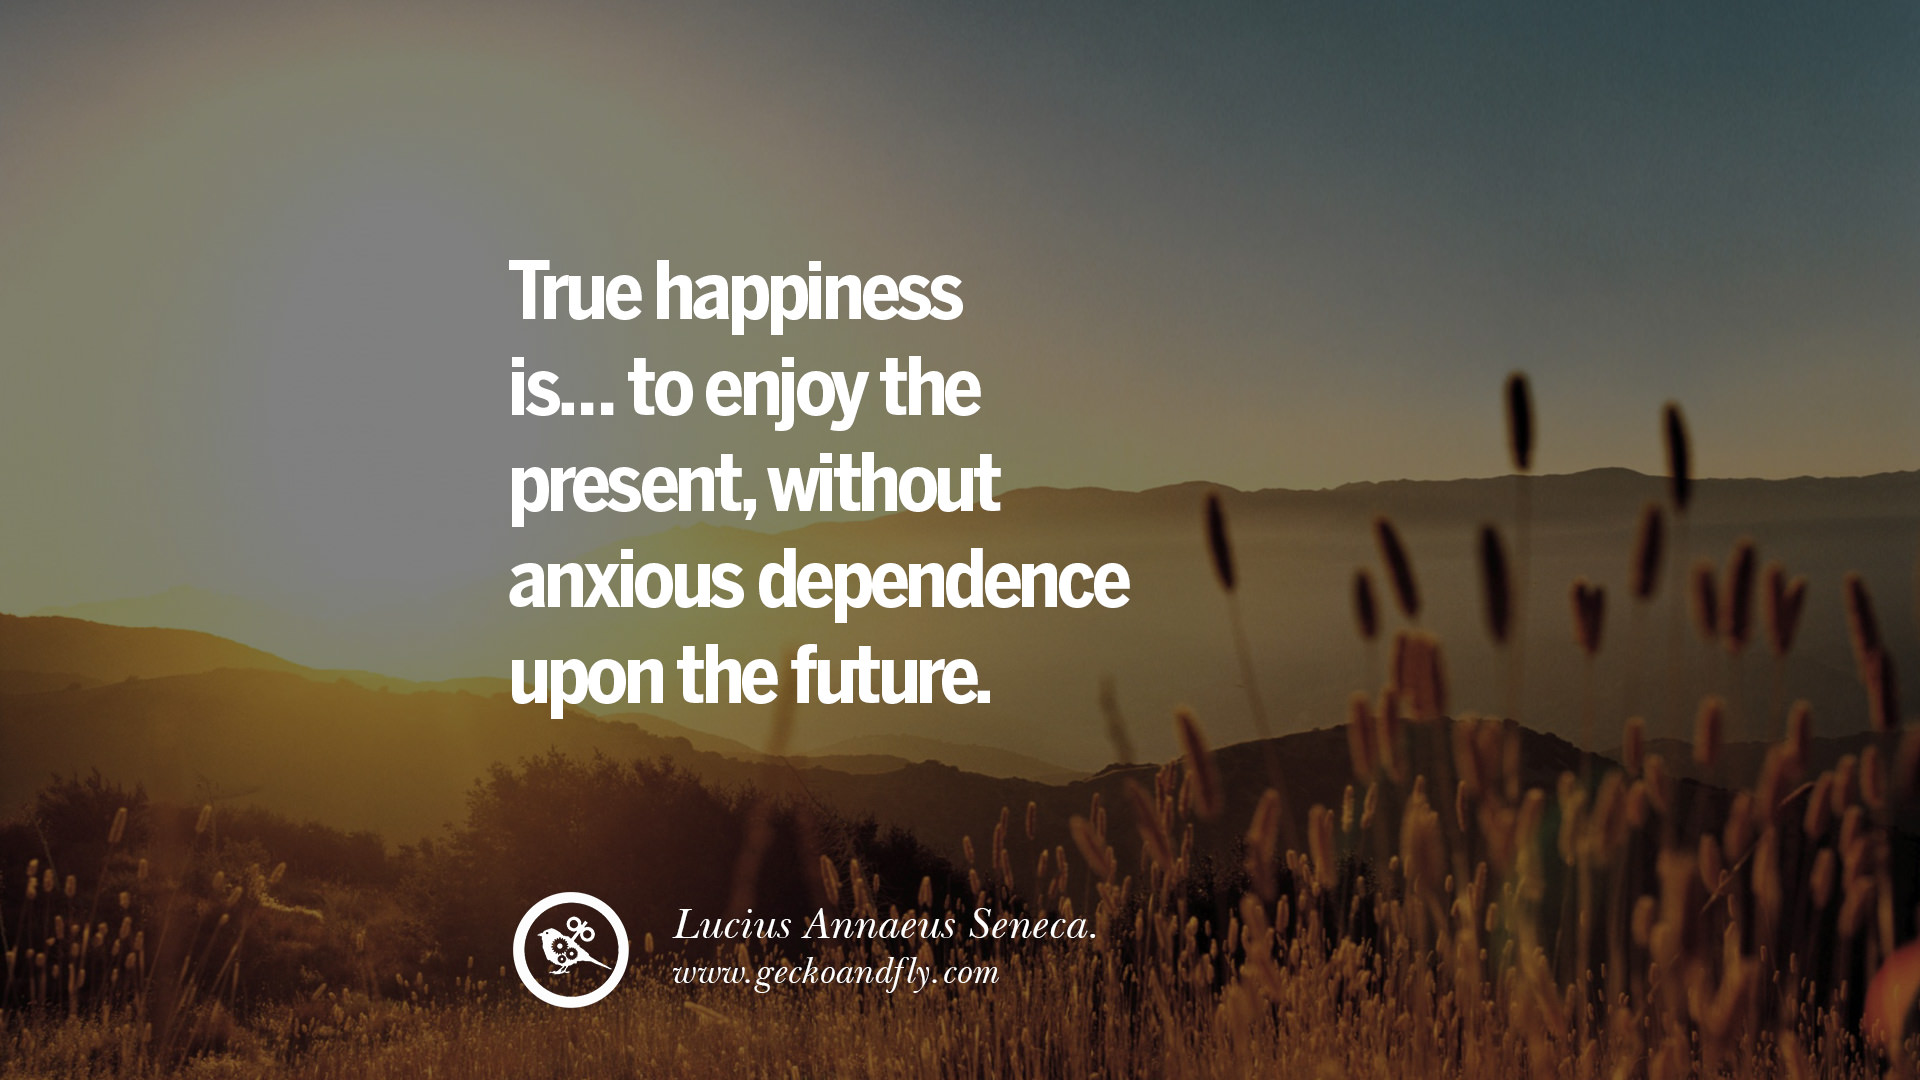 The Pursuit Of Happiness Quotes 21 Quotes About Pursuit Of Happiness To Change Your Thinking